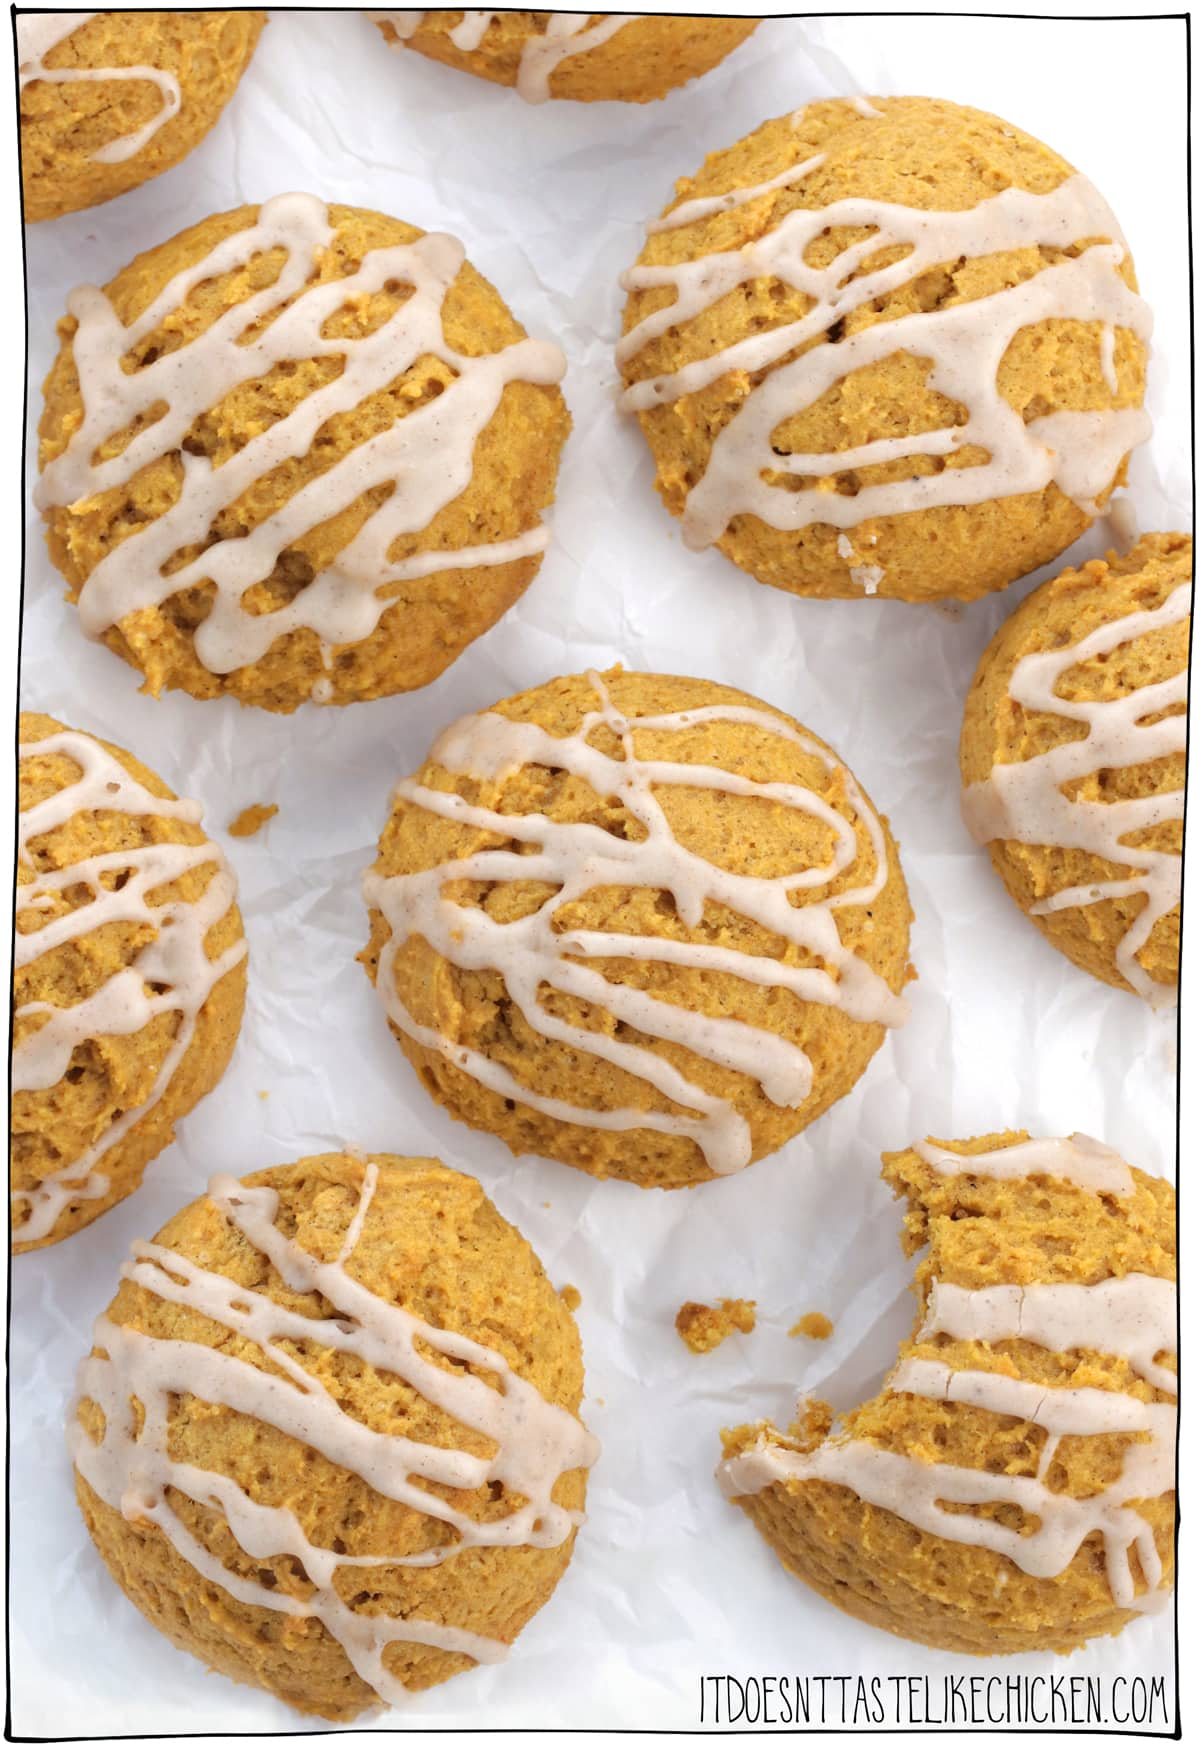 Soft Vegan Pumpkin Cookies with pumpkin spice icing are every bit as delicious as they sound! These old fashioned cookies are super soft and cakey, almost like the top part of a cupcake more than a traditional cookie. They are easy to make and freeze beautifully. #itdoesnttastelikechicken #veganrecipes #veganbaking